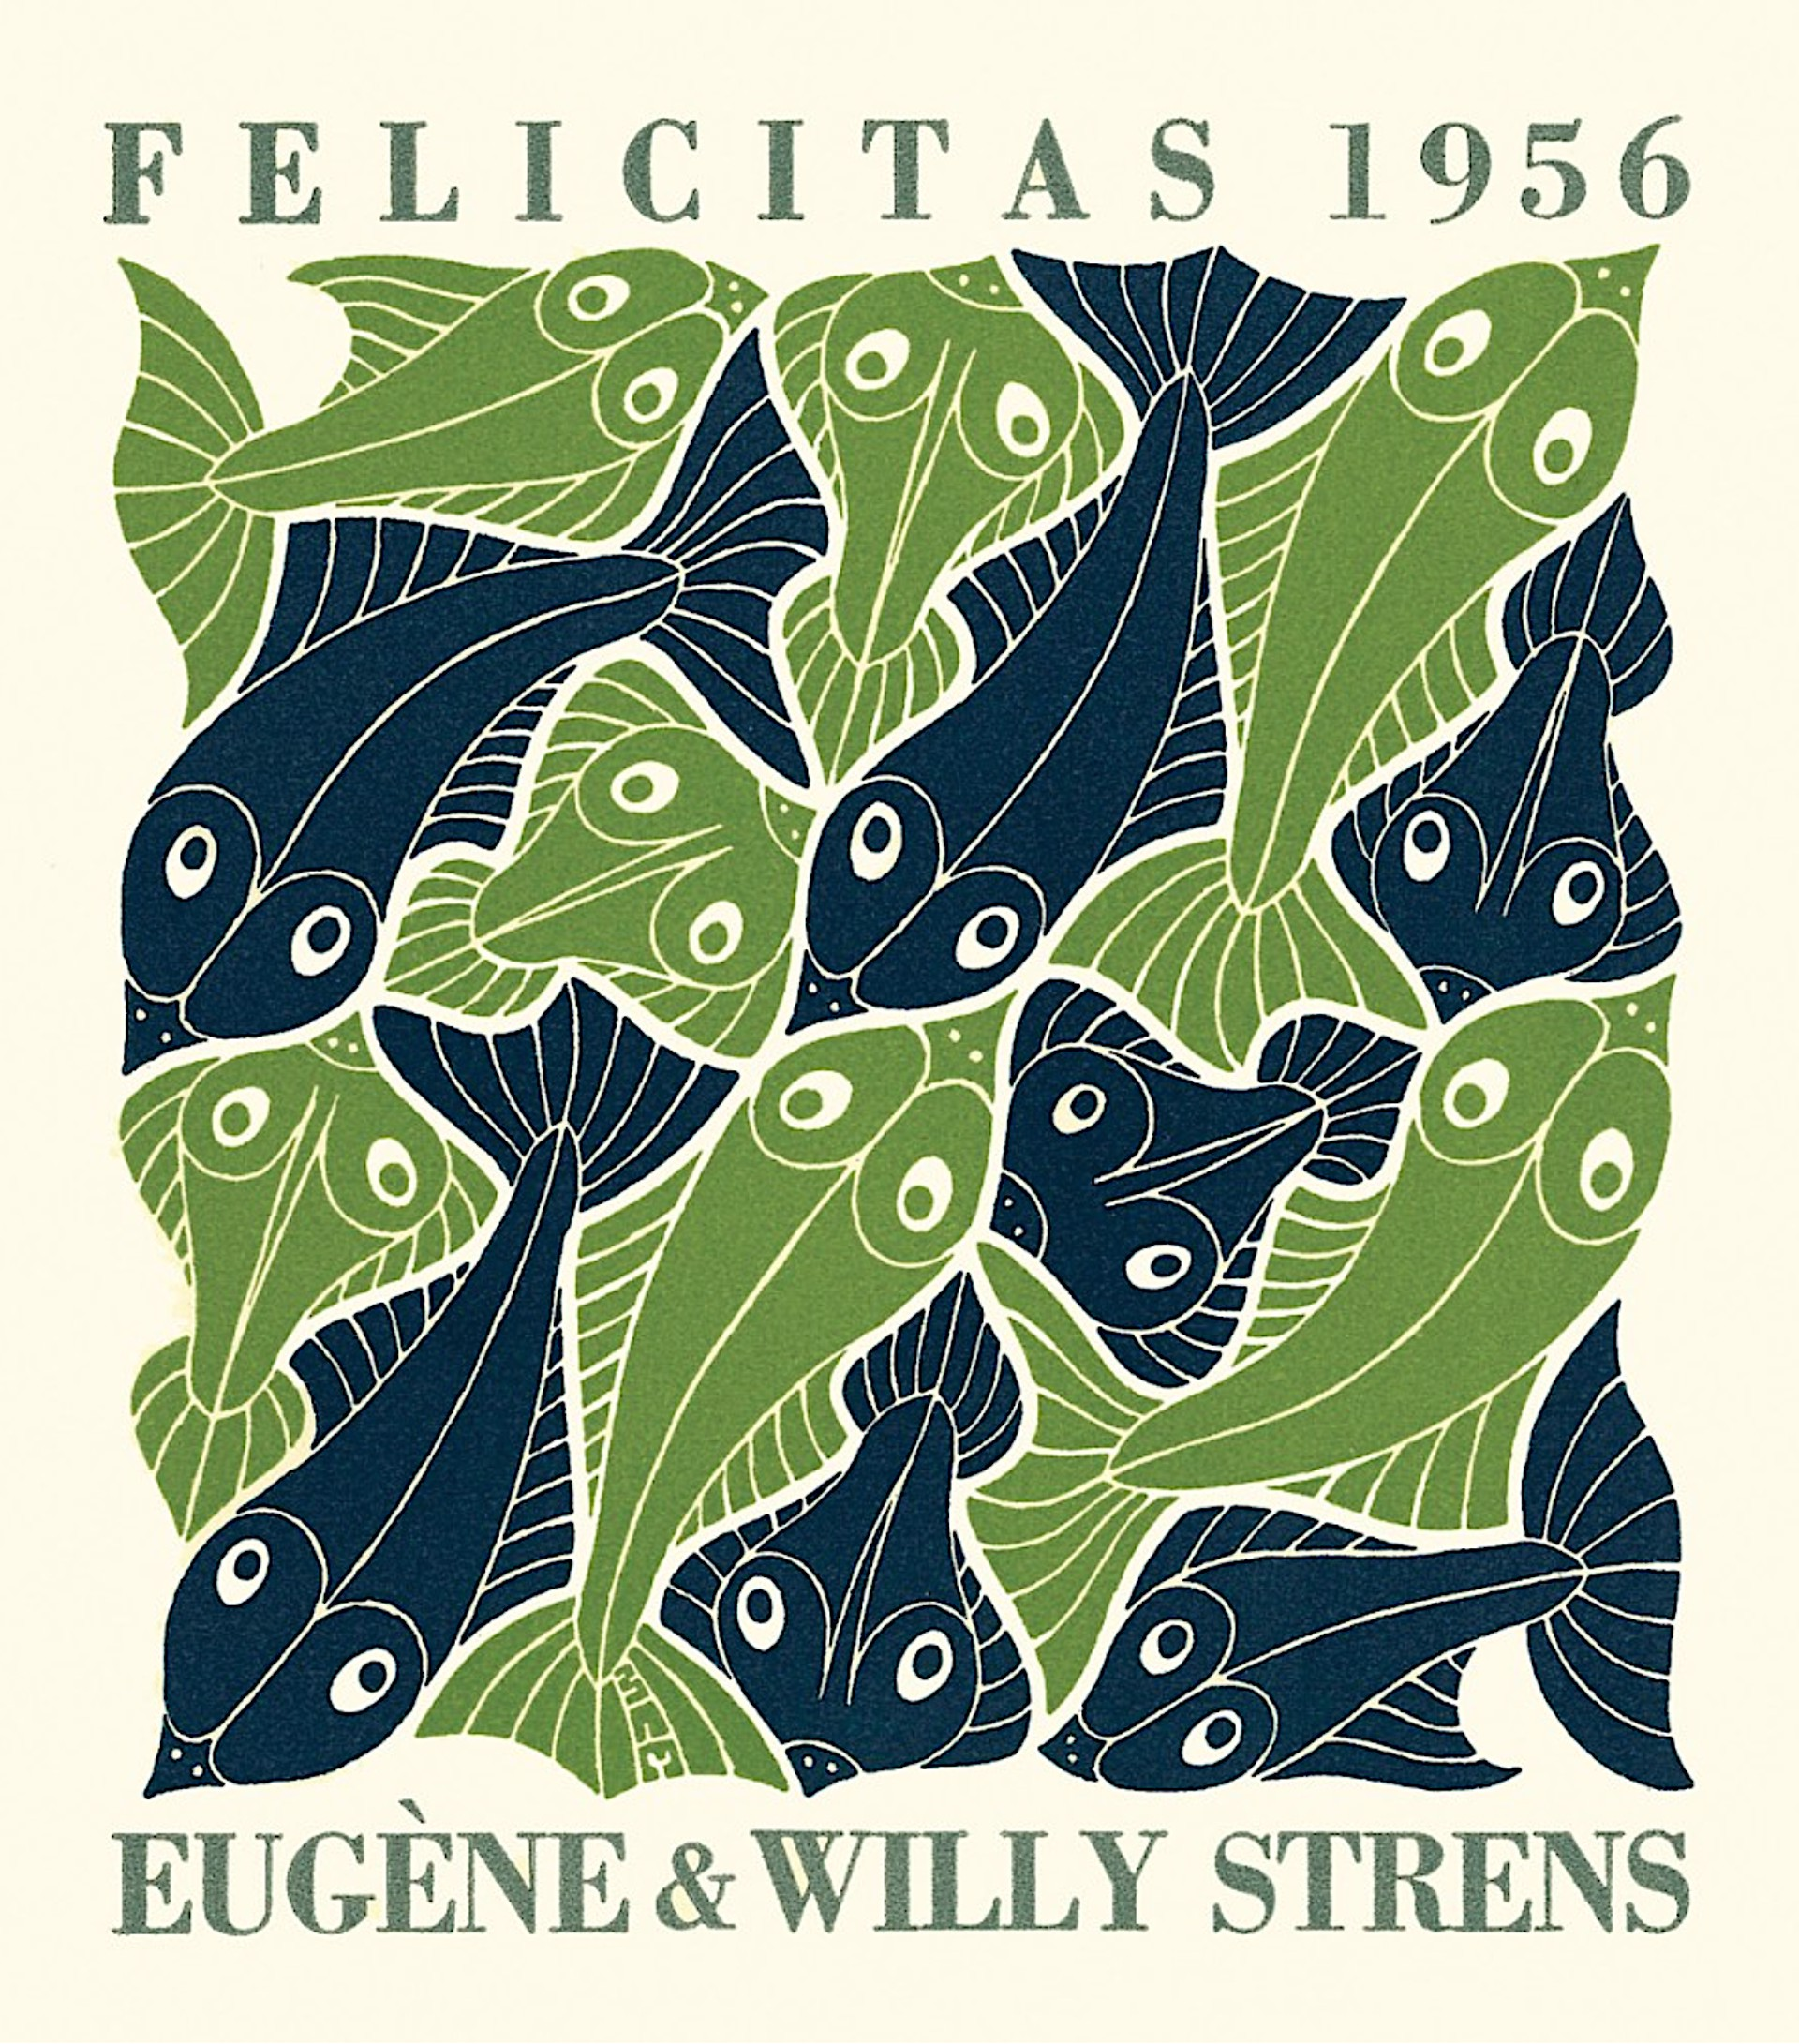 Water - Strens New Year's Greeting Card (Fish) by M.C. Escher